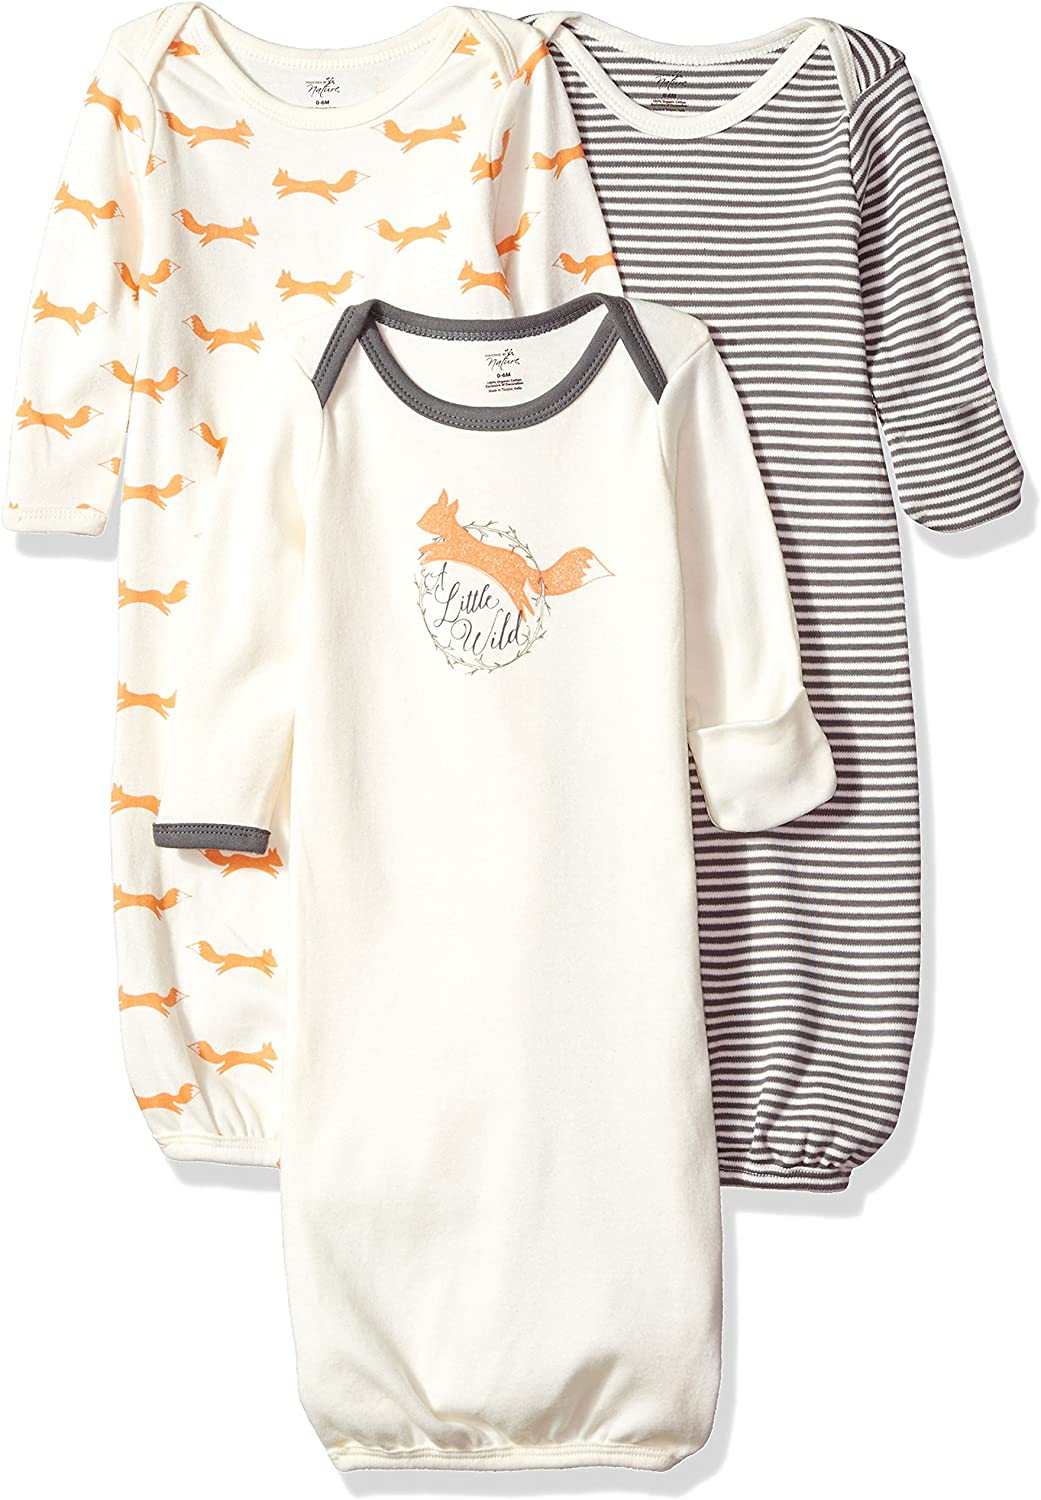 Touched by Nature Unisex Baby Organic Cotton Gowns: Clothing